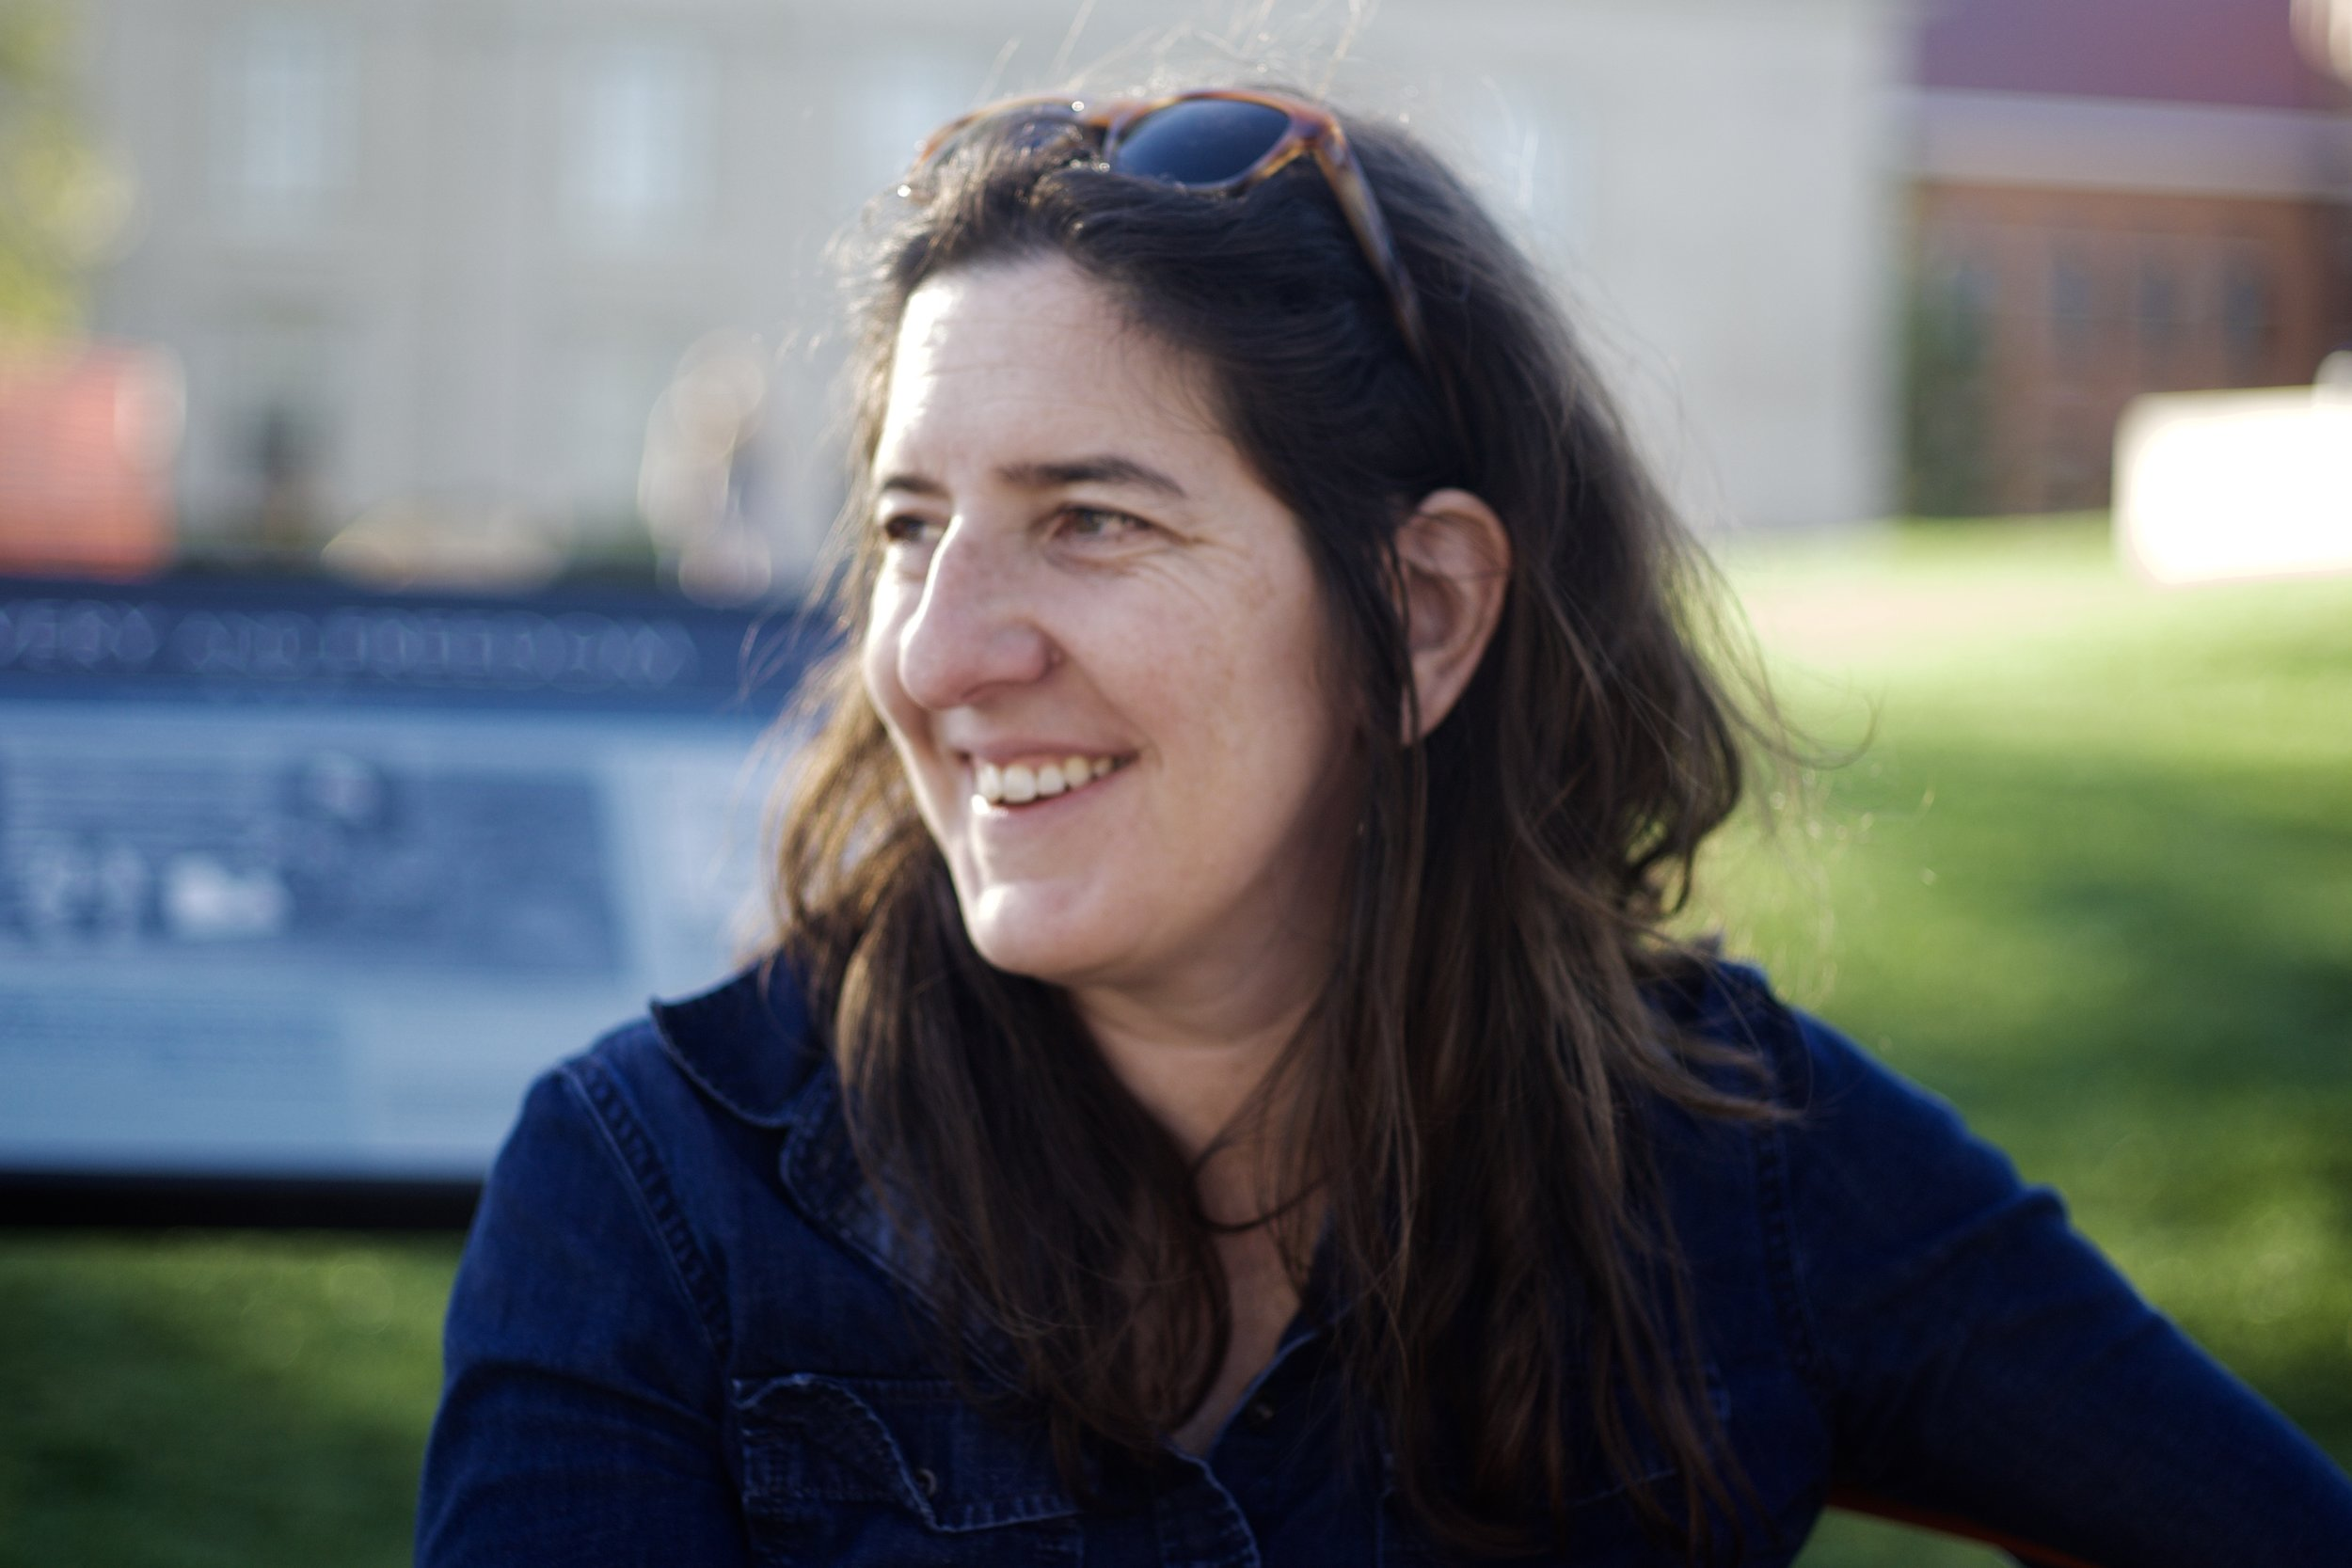 Miriam Schleifer McCormick is an Associate Professor of Philosophy at the University of Richmond. Her primary research interests focus on the nature and norms of belief. She is the author of Believing Against the Evidence: Agency and the Ethics of Belief.